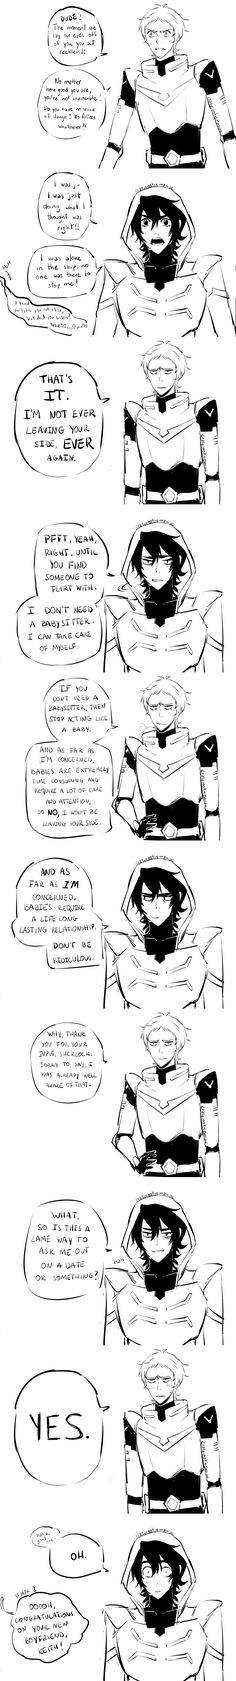 Klance Voltron <<< if they don't become canon this way I'm gunna be upset